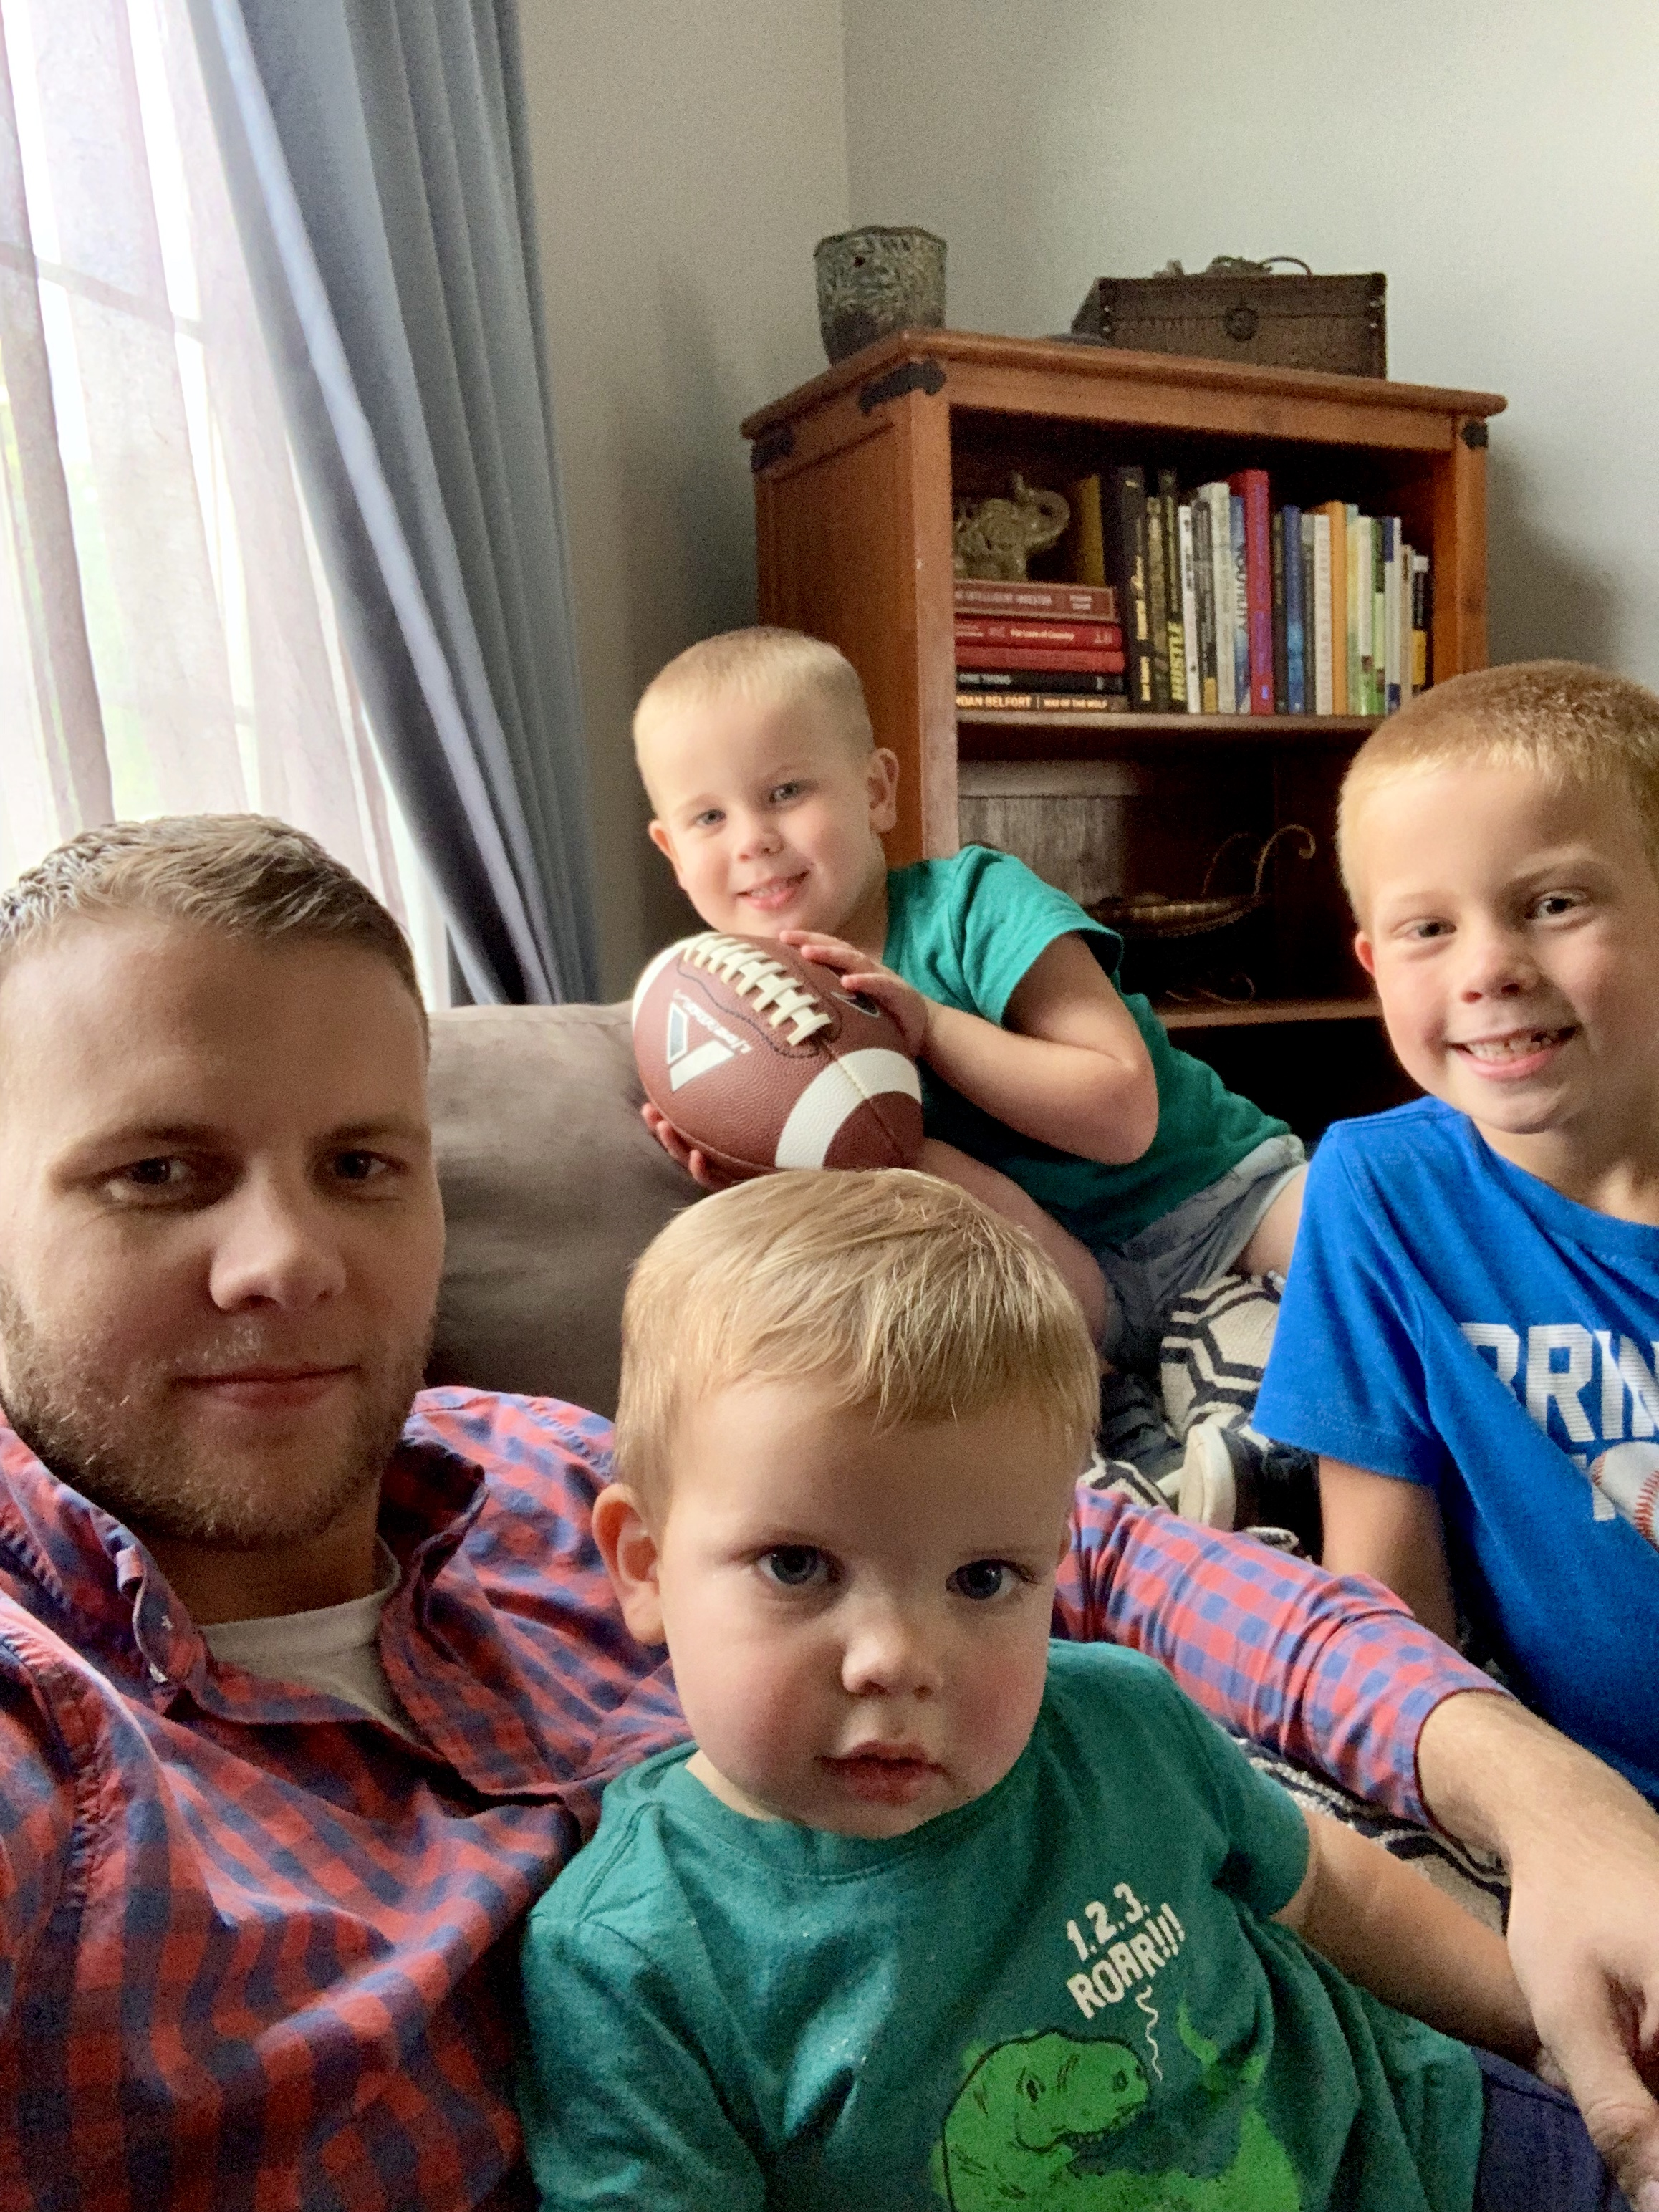 Image of nick sitting on the couch with his 3 boys after daycare.